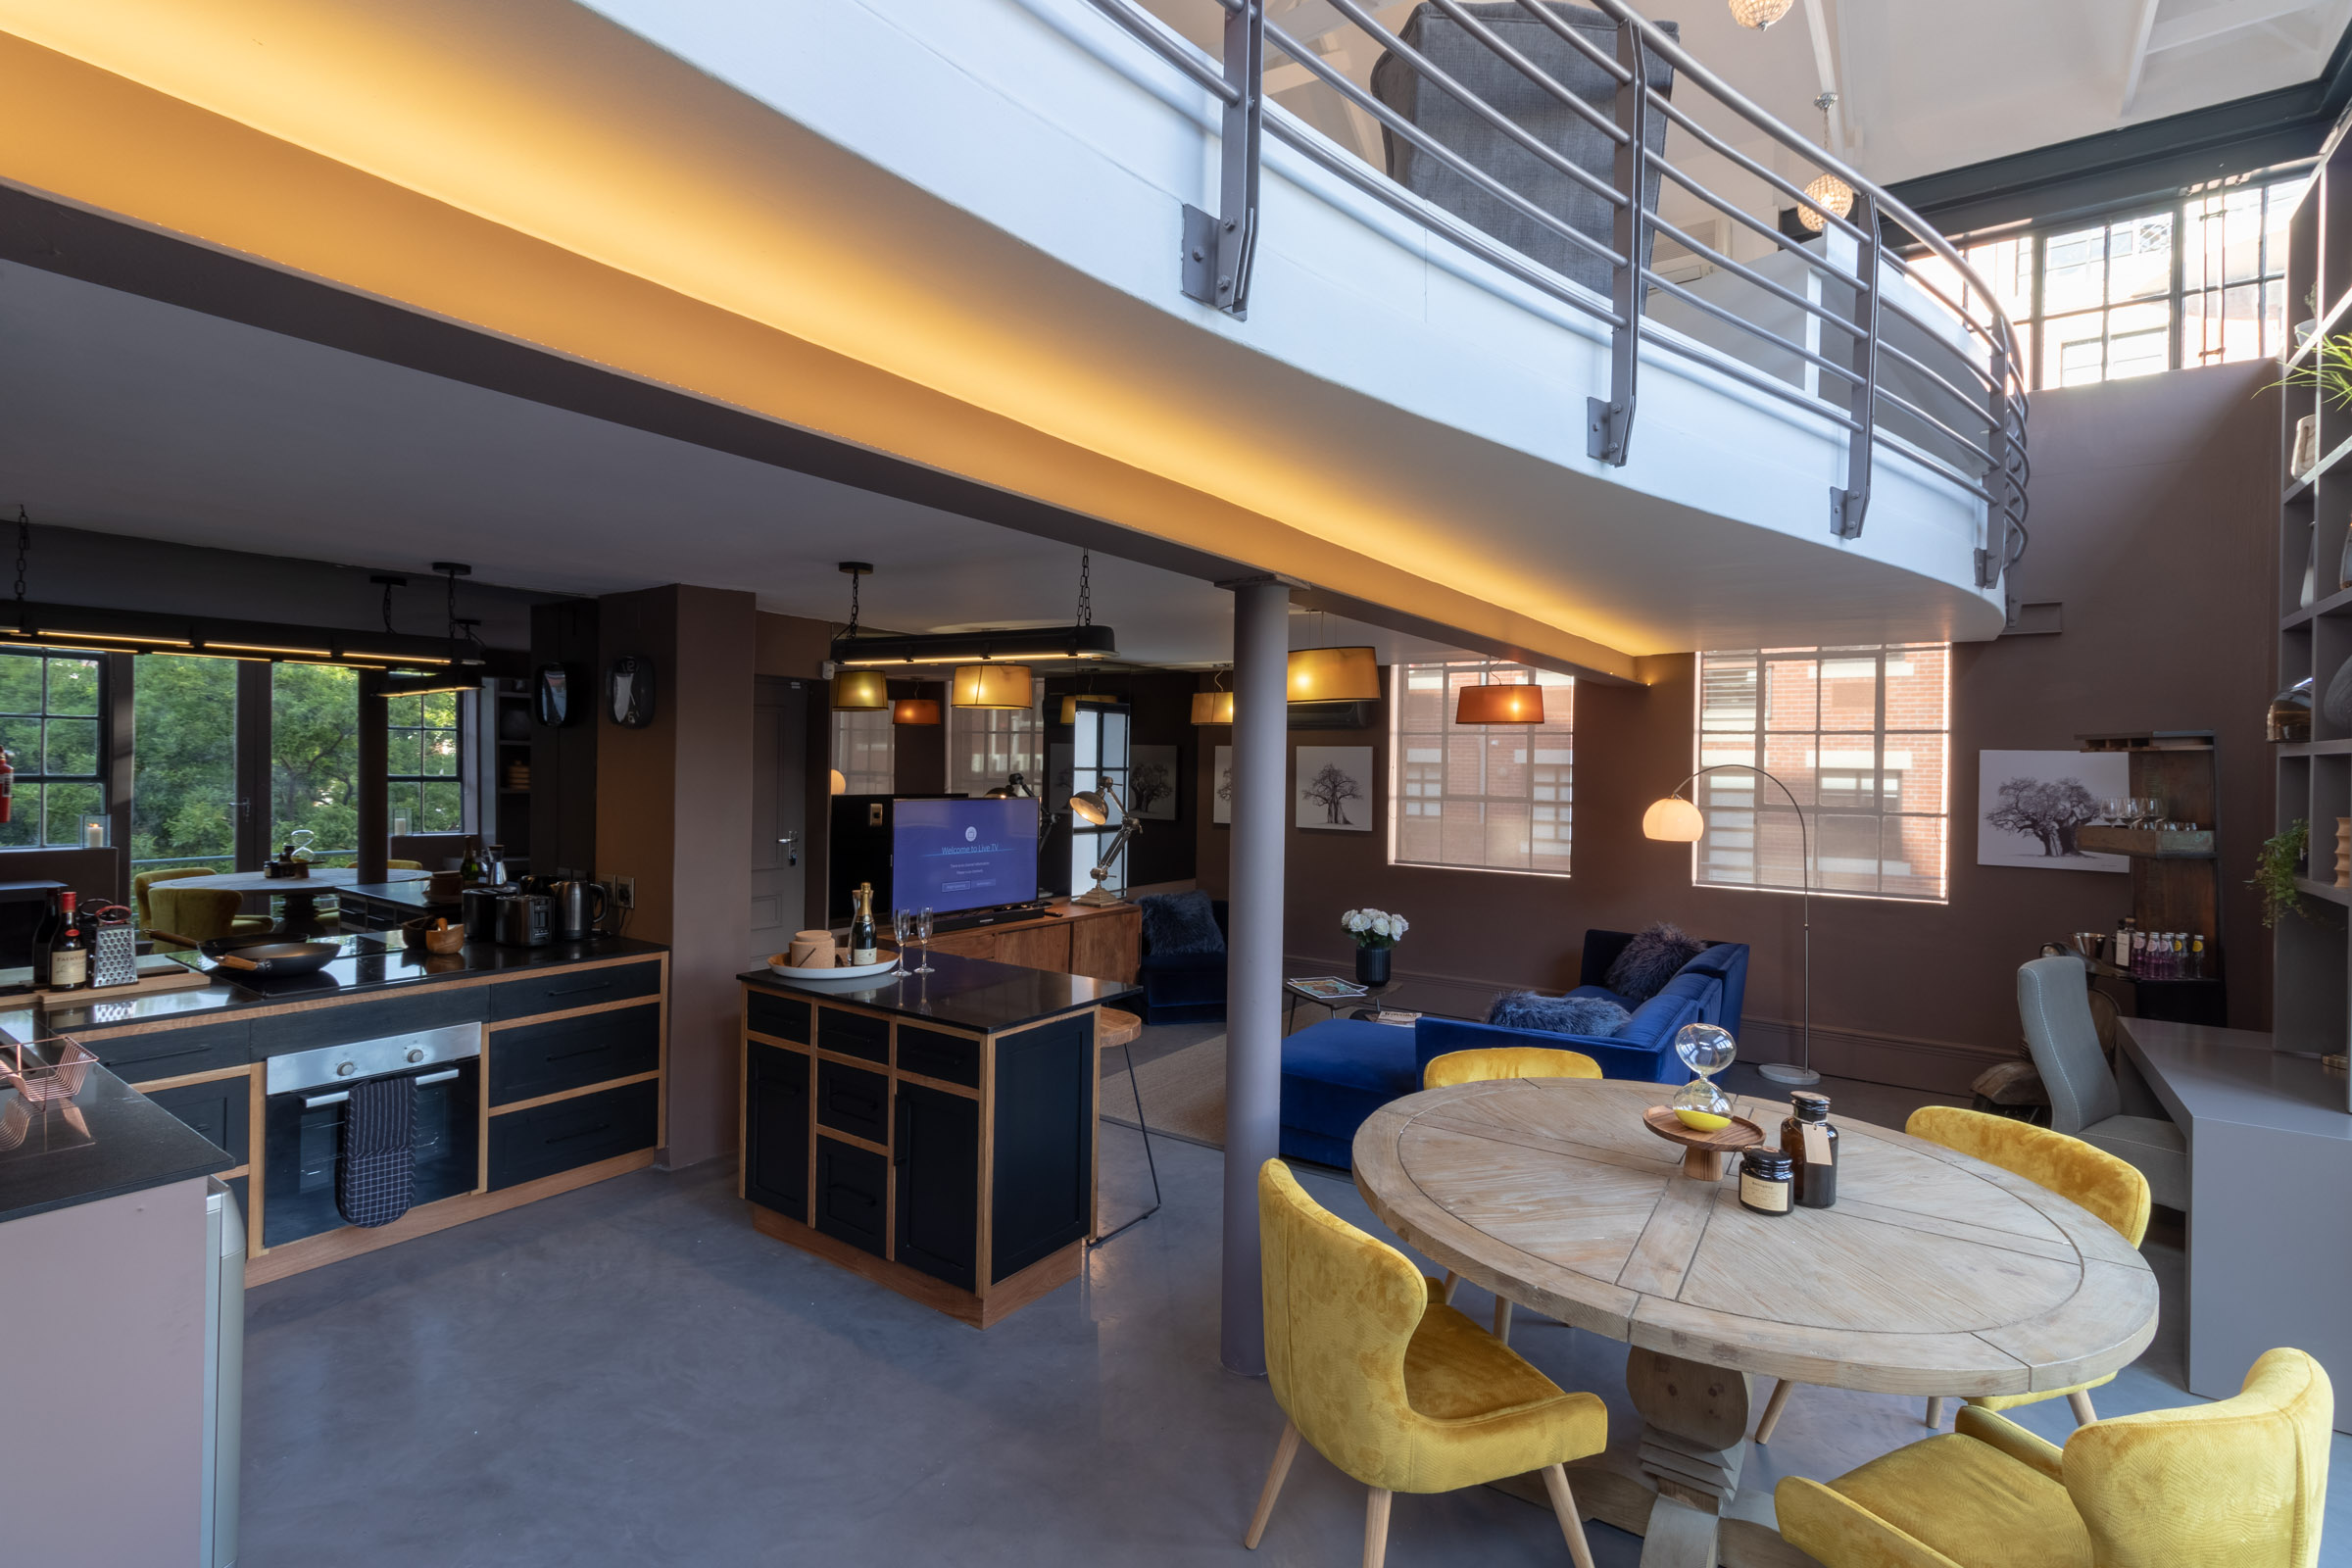 Luxury Loft Design Trending Area 24hr Security Lofts For Rent In Cape Town Western Cape South Africa